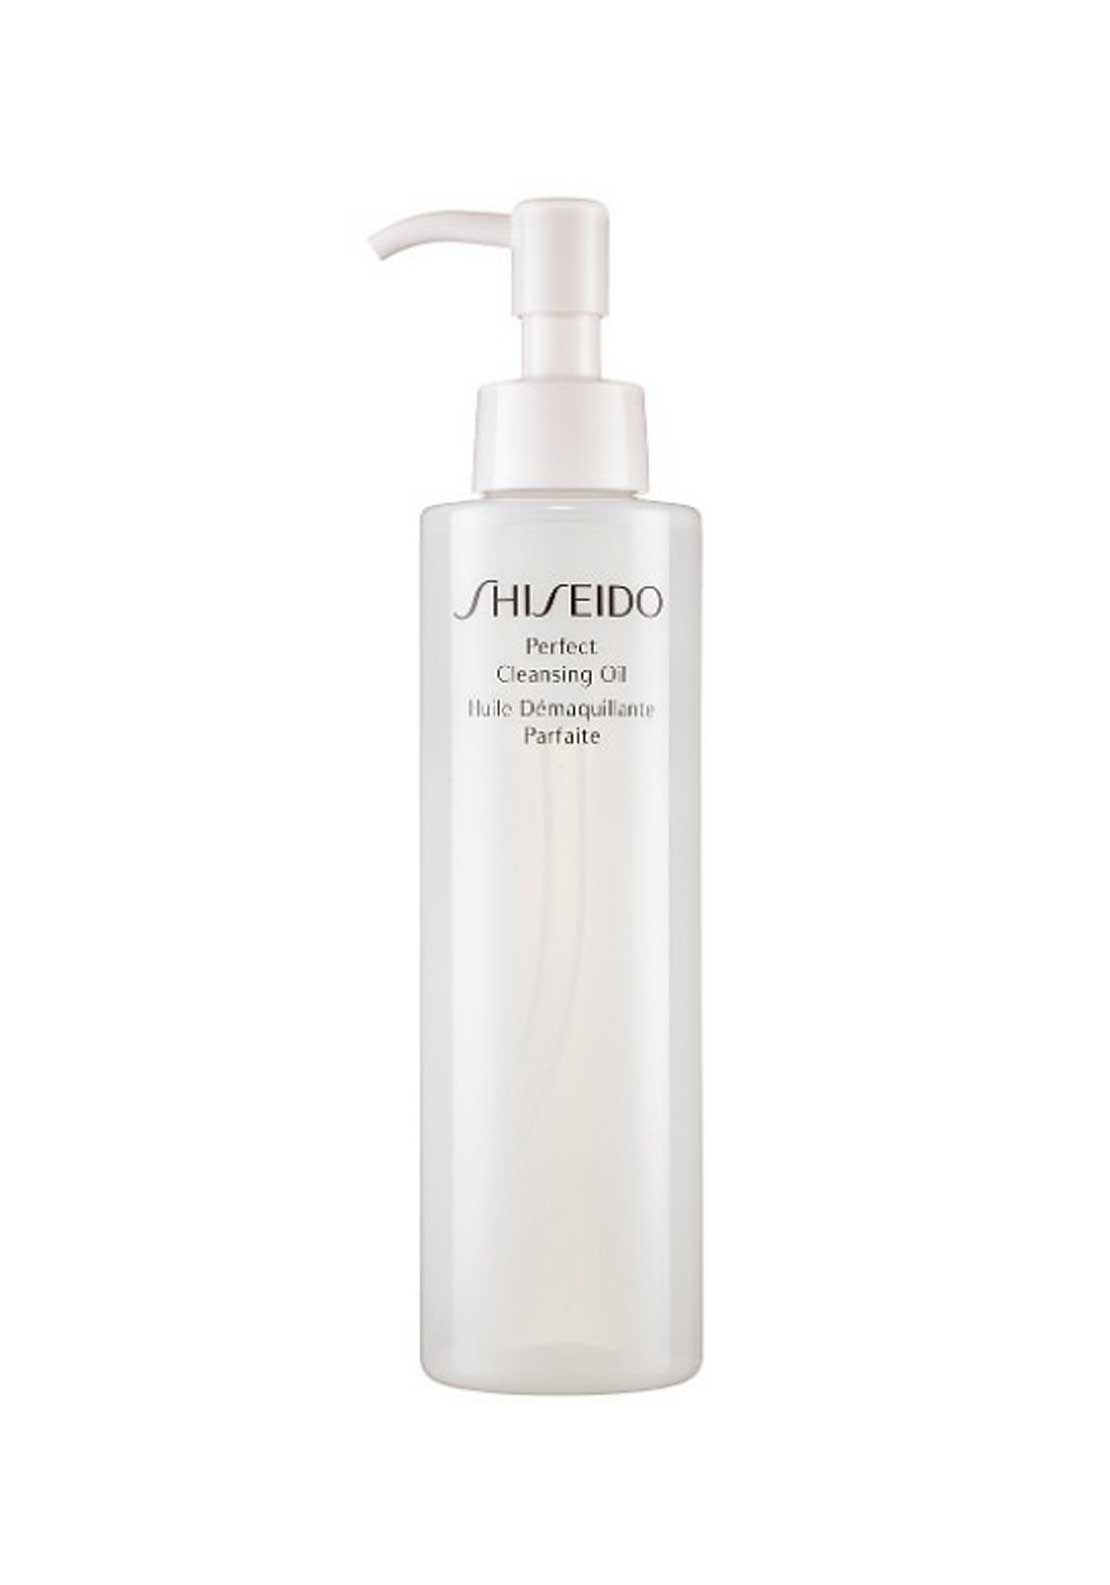 Shiseido Perfect Cleansing Oil, 300ml